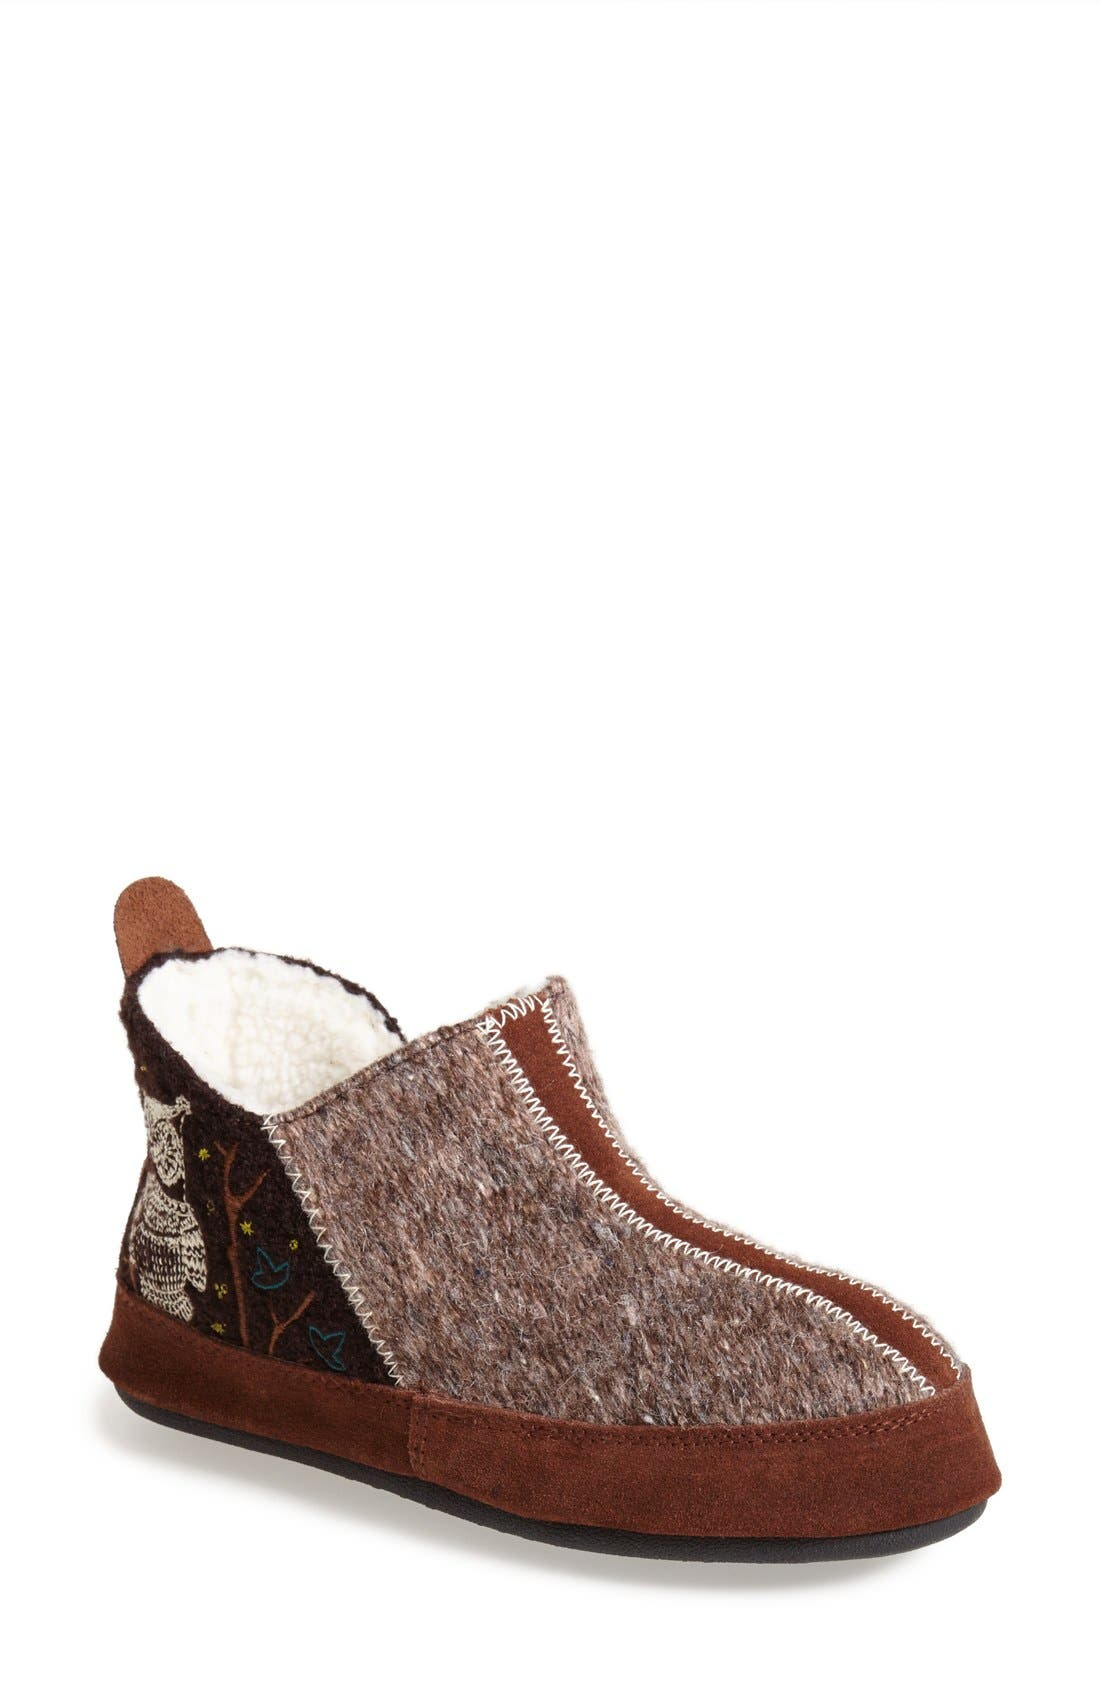 'Forest' Bootie Slipper,                         Main,                         color, Chocolate